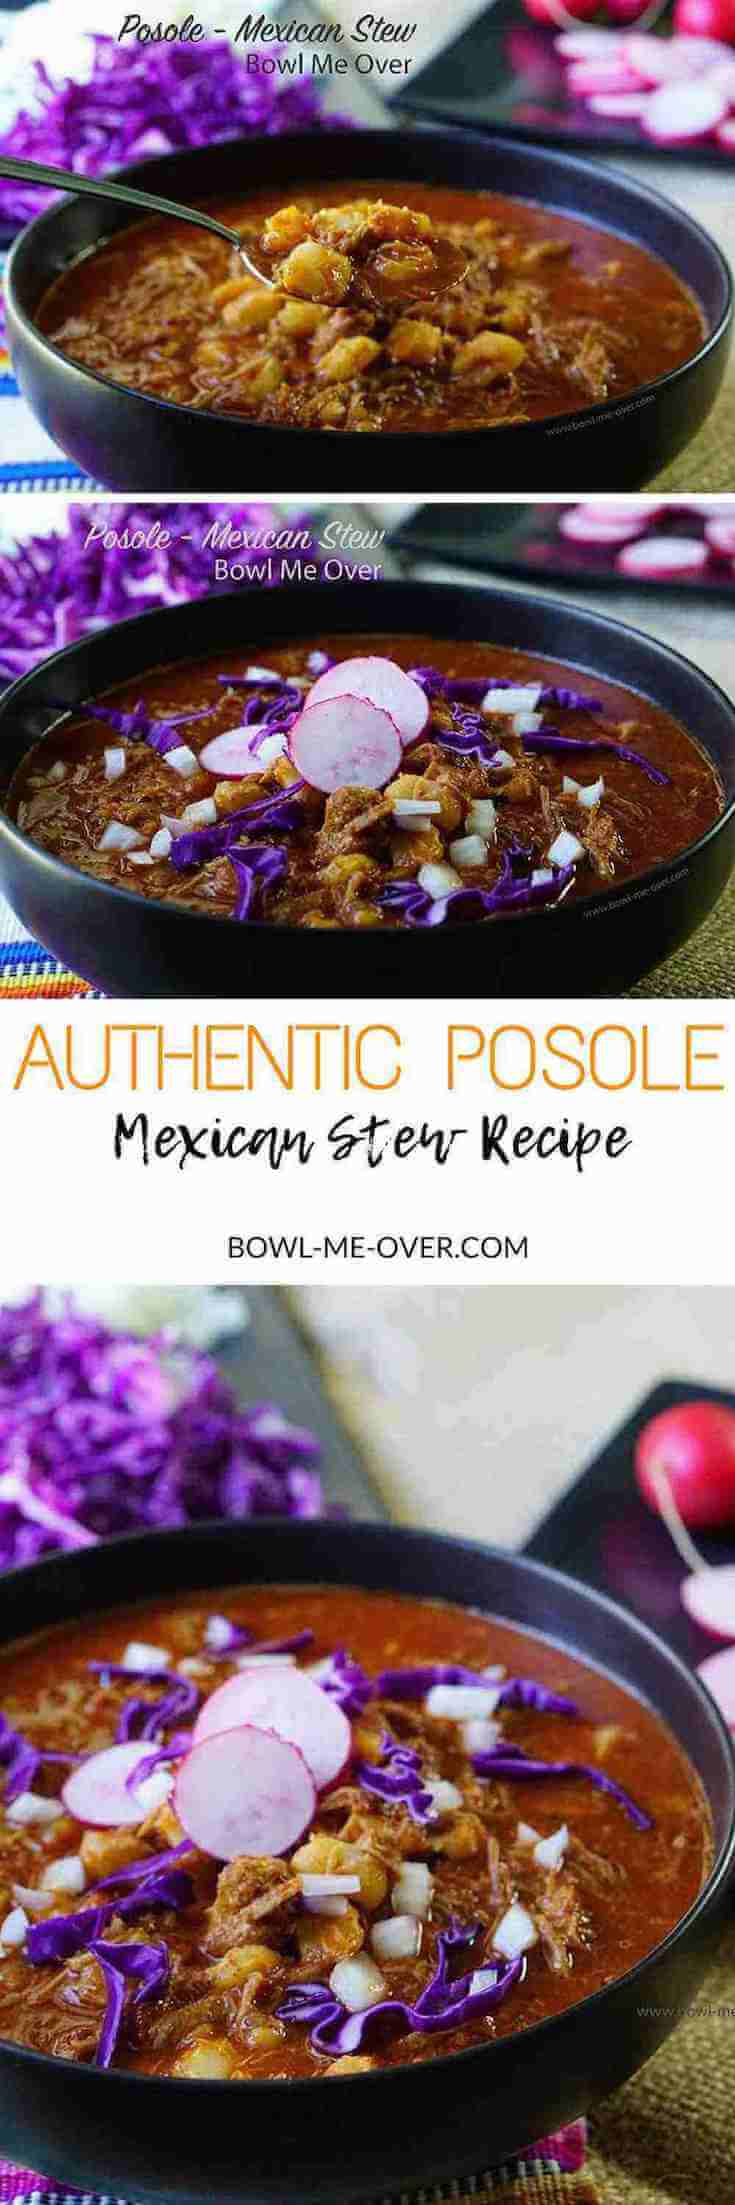 Want authentic Mexican flavor? This recipe for posole is truly perfection in a spoon. It is deliciously savory and flavorful. Truly fabulous and easy enough for anyone to make! #posole #pozole #mexicanstew #bowlmeover